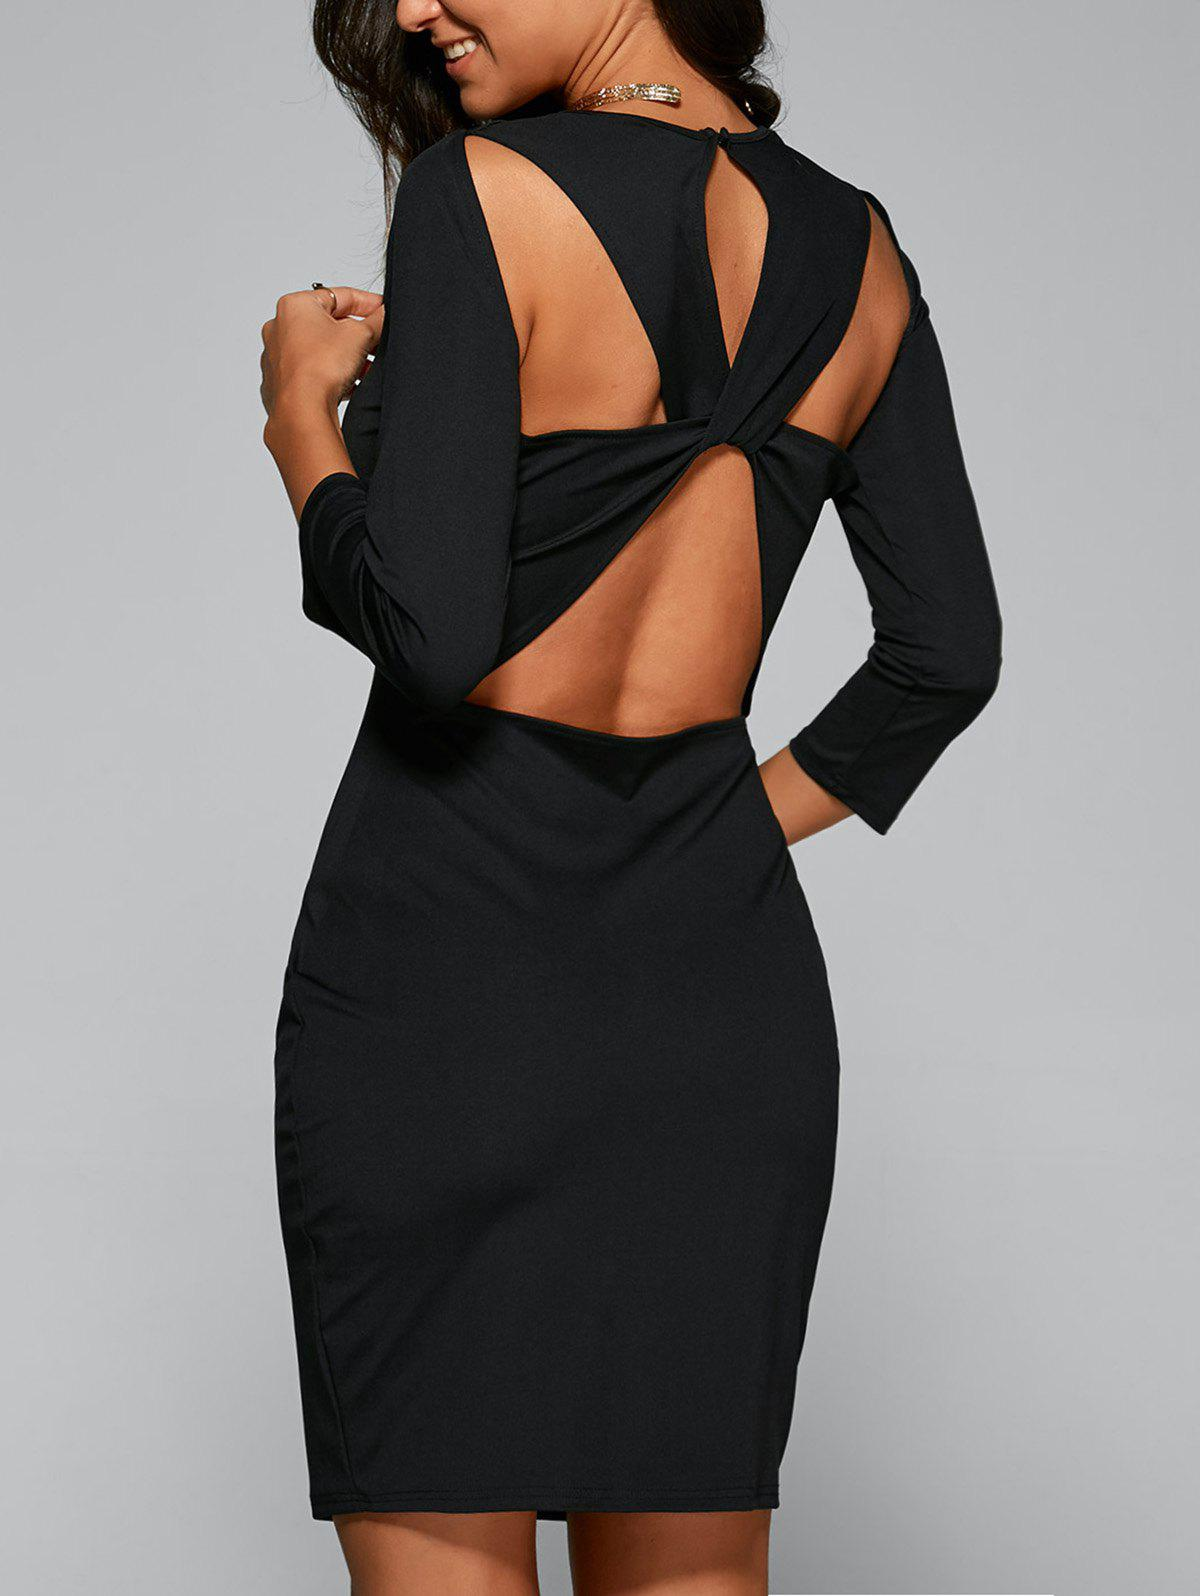 Bandage Cut Out Bodycon Dress with Sleeves crossed bandage cut out cami dress